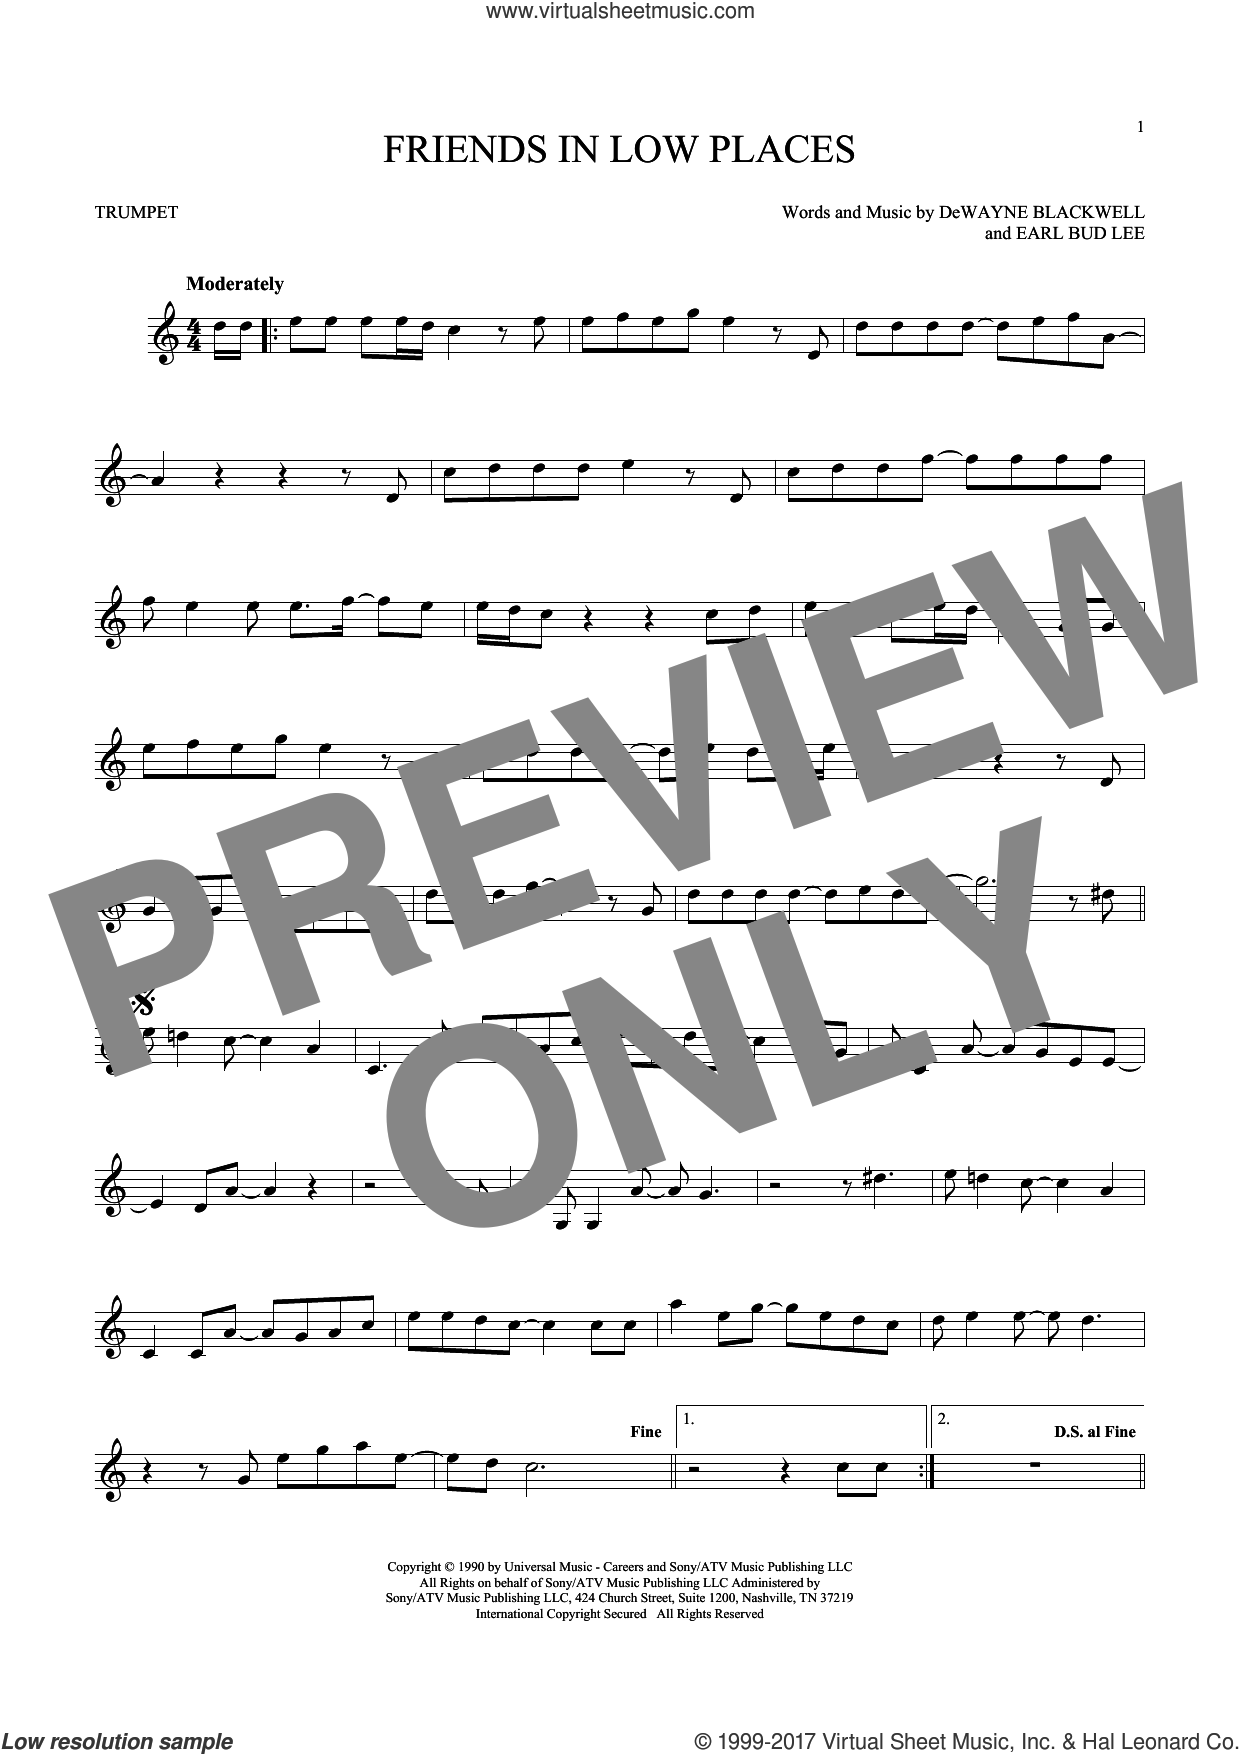 Friends In Low Places sheet music for trumpet solo by Garth Brooks, DeWayne Blackwell and Earl Bud Lee, intermediate skill level